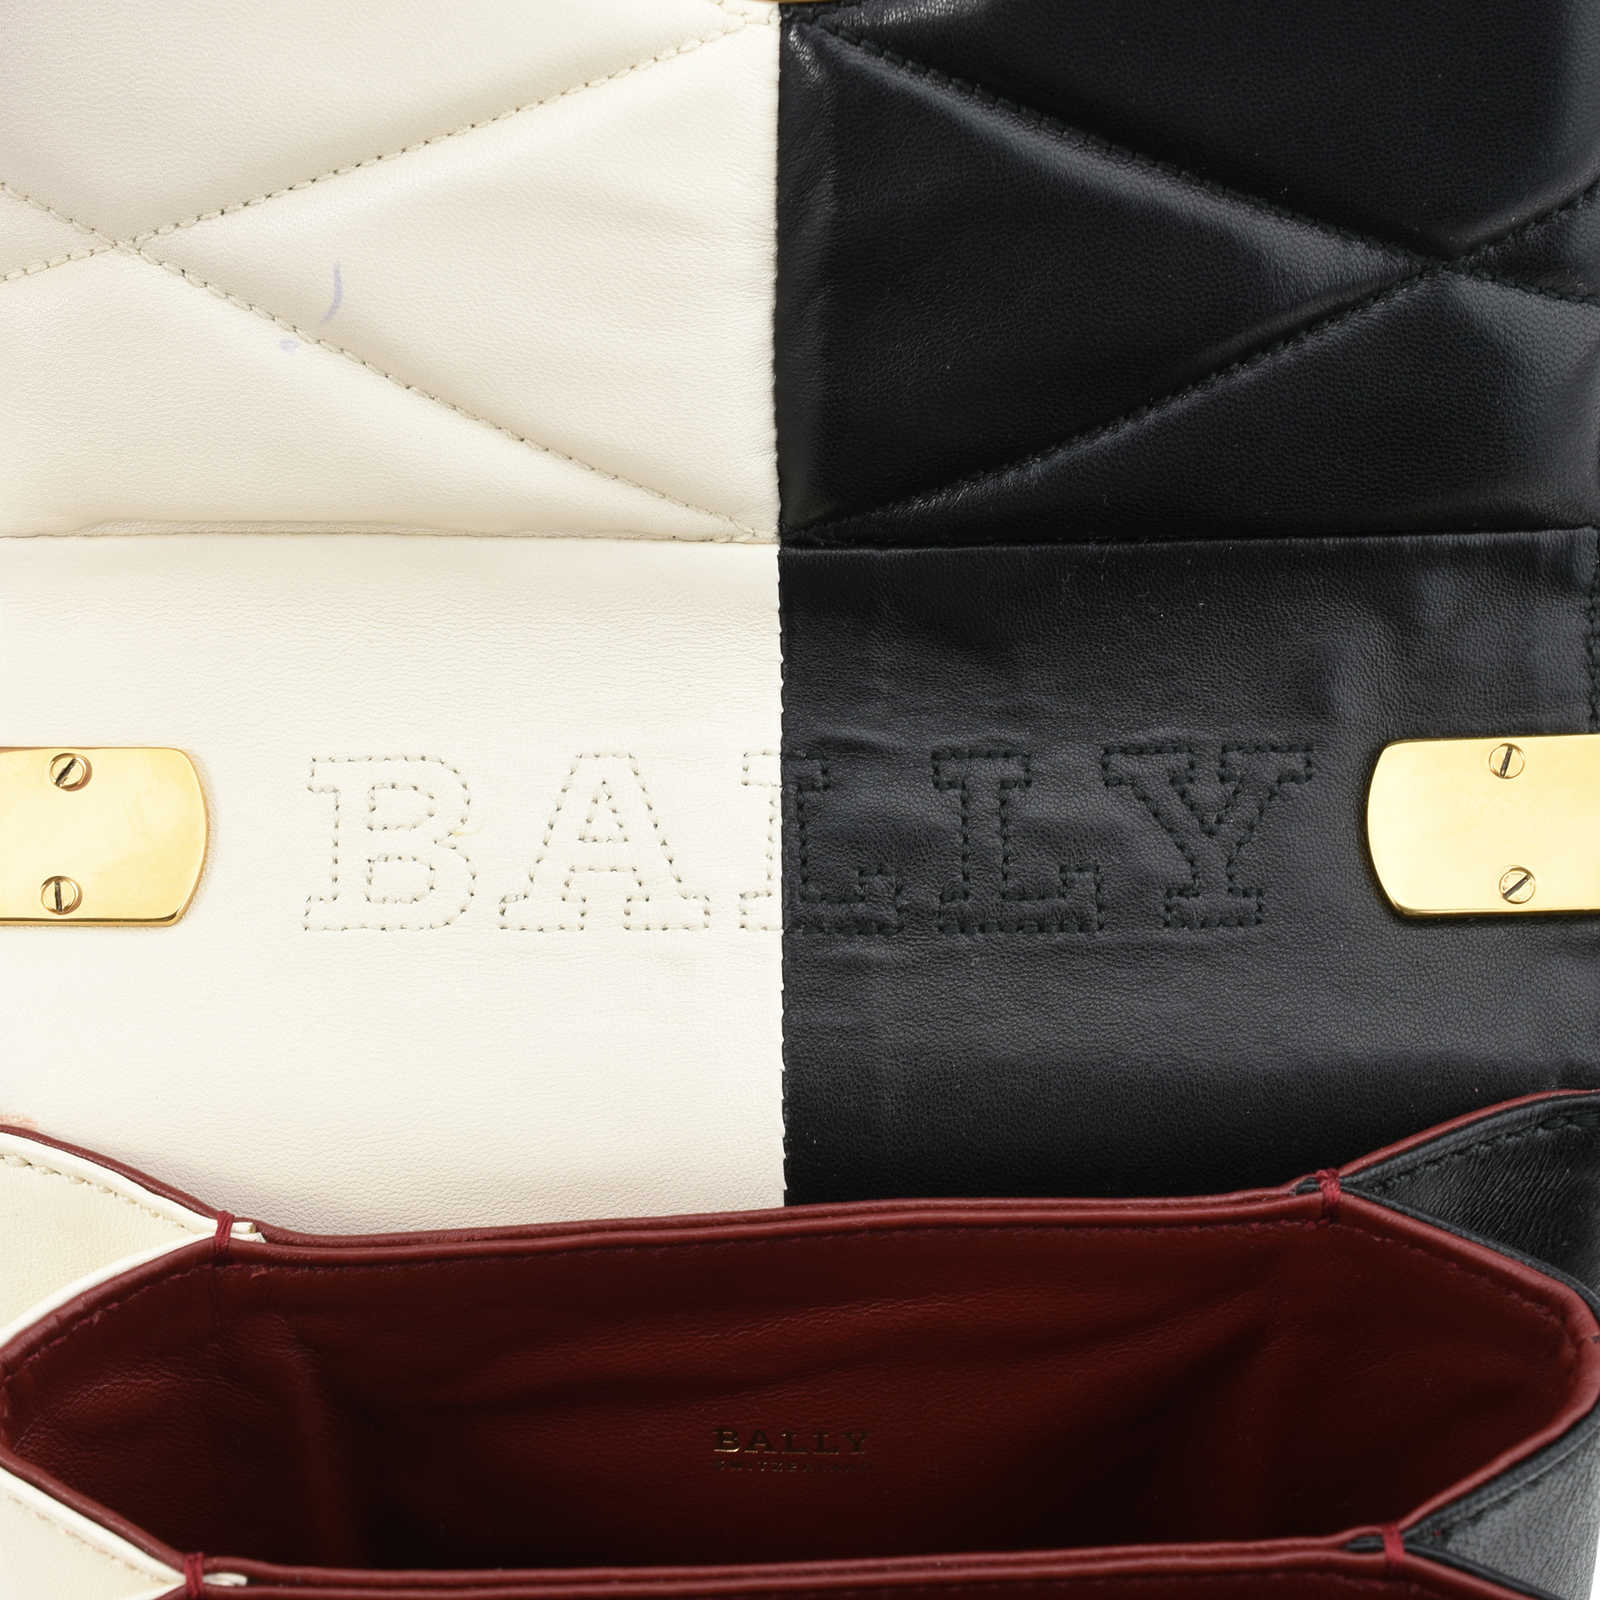 c2a5bbfec2 ... Authentic Second Hand Bally Eclipse Bag (PSS-309-00001) - Thumbnail 8  ...